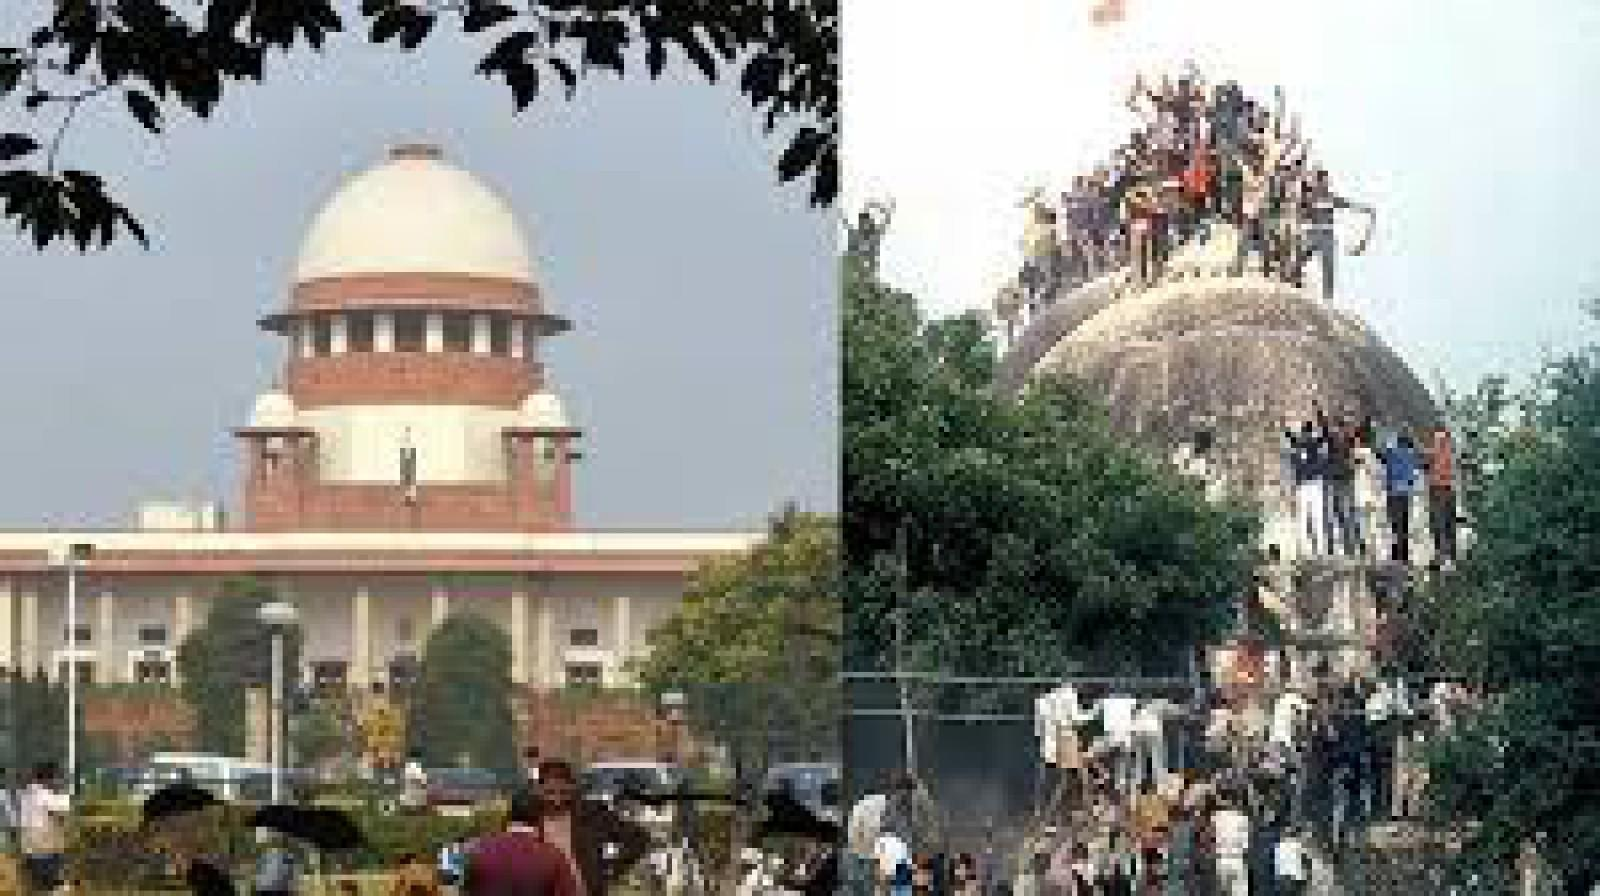 ayodhya-case-muslim-petitioners-reject-mediation-panel